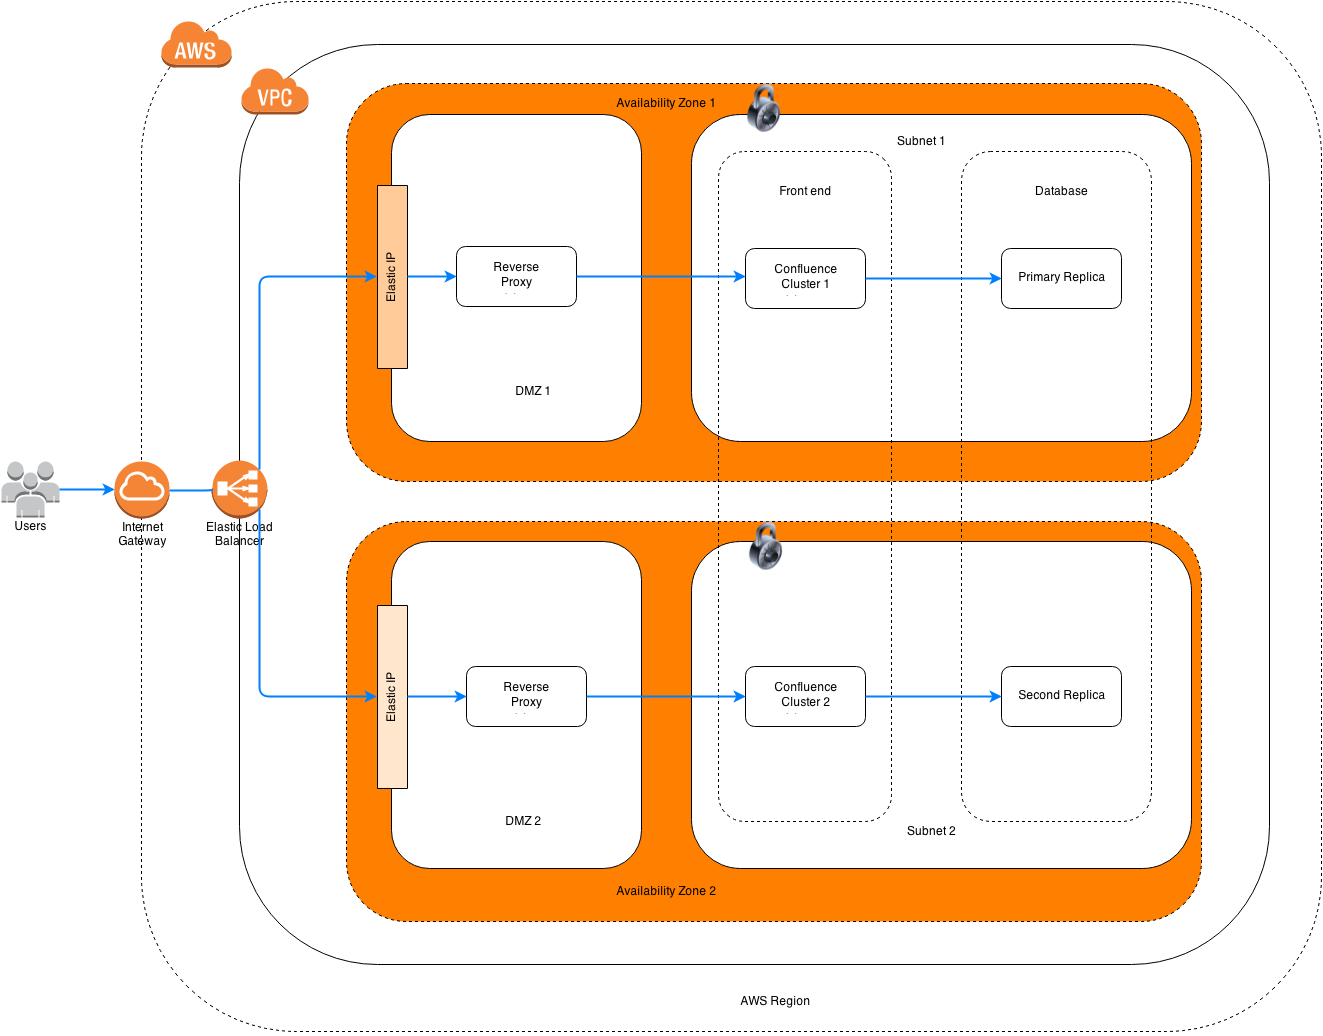 Drawing timeline draw io. Using aws icons to